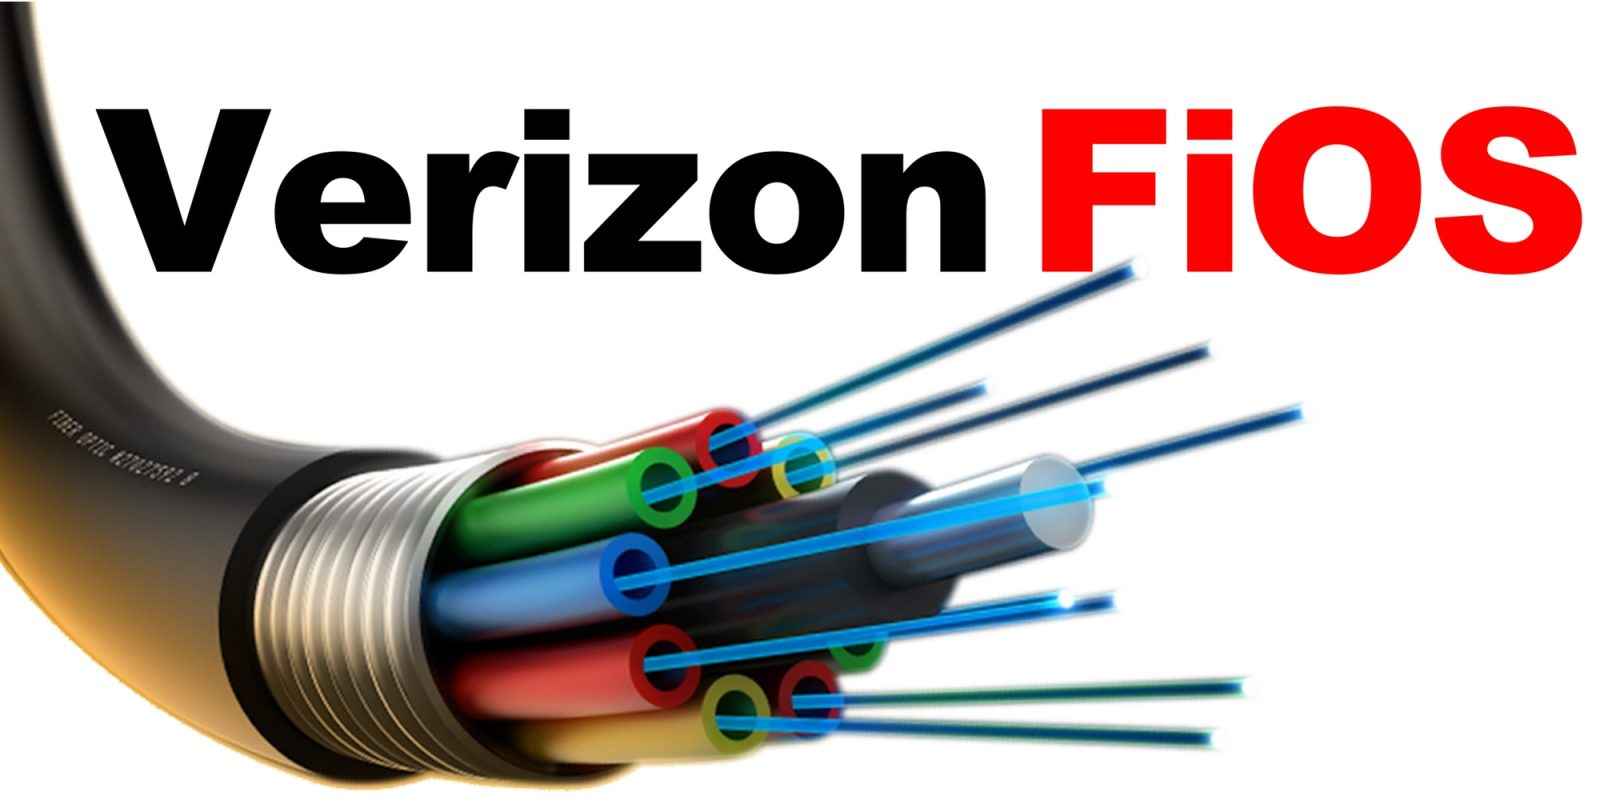 Verizon Fios Check Out Our Review